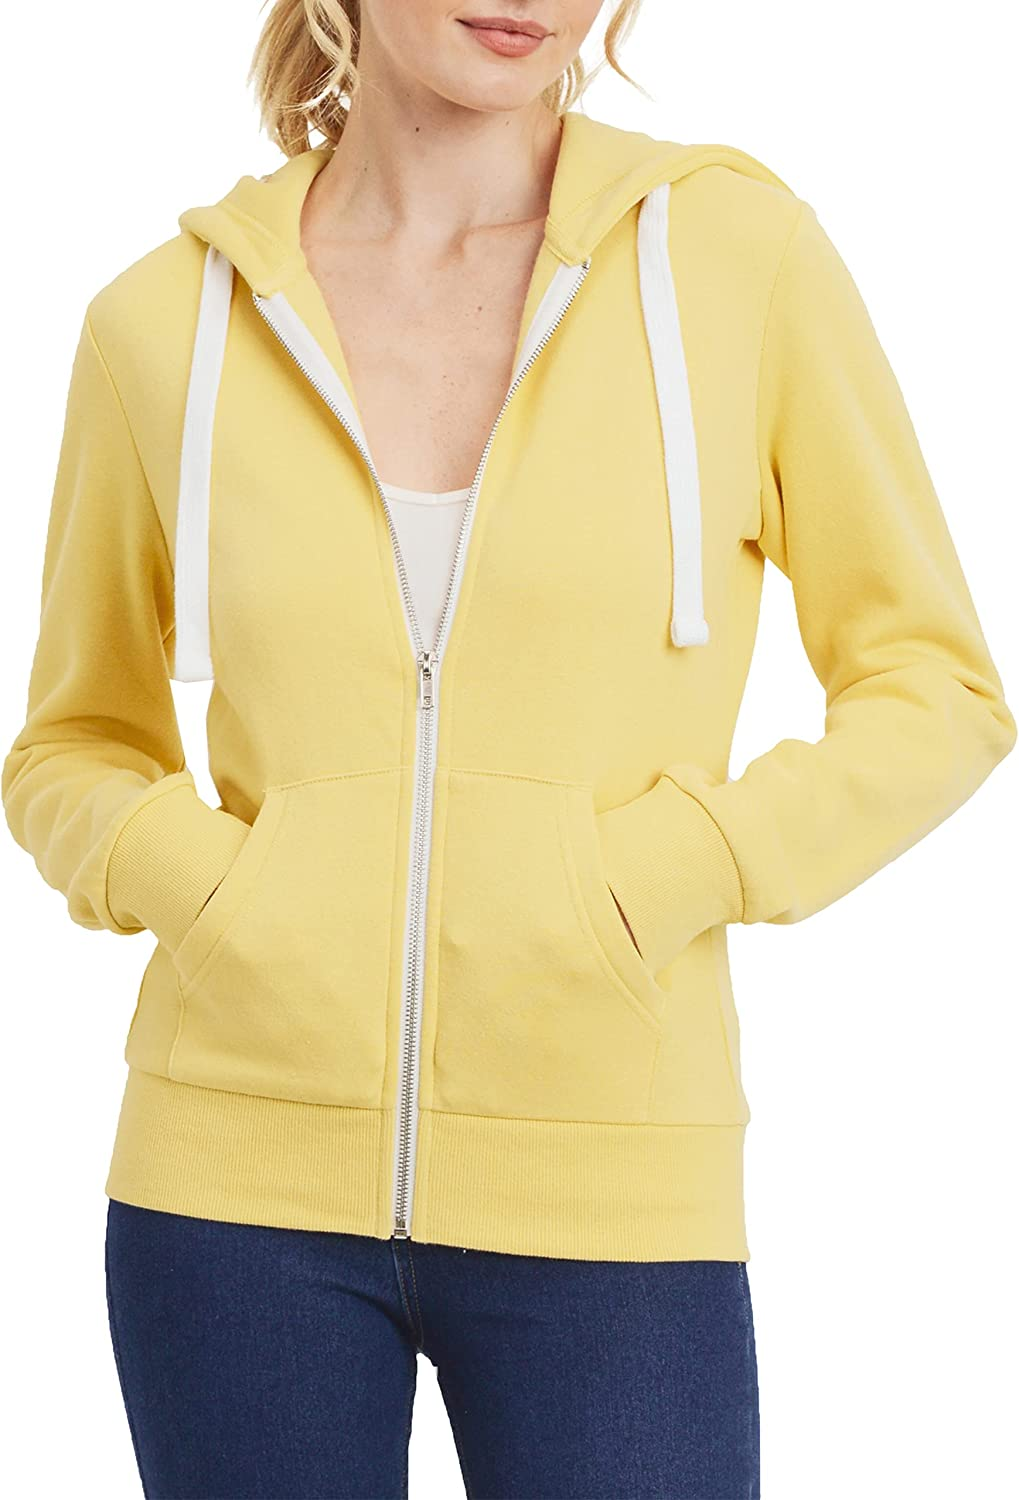 PAC Women's Comfortable Soft Fleece Casual Lightweight Active Thin Zip-Up Hoodie Jacket With Two Pockets